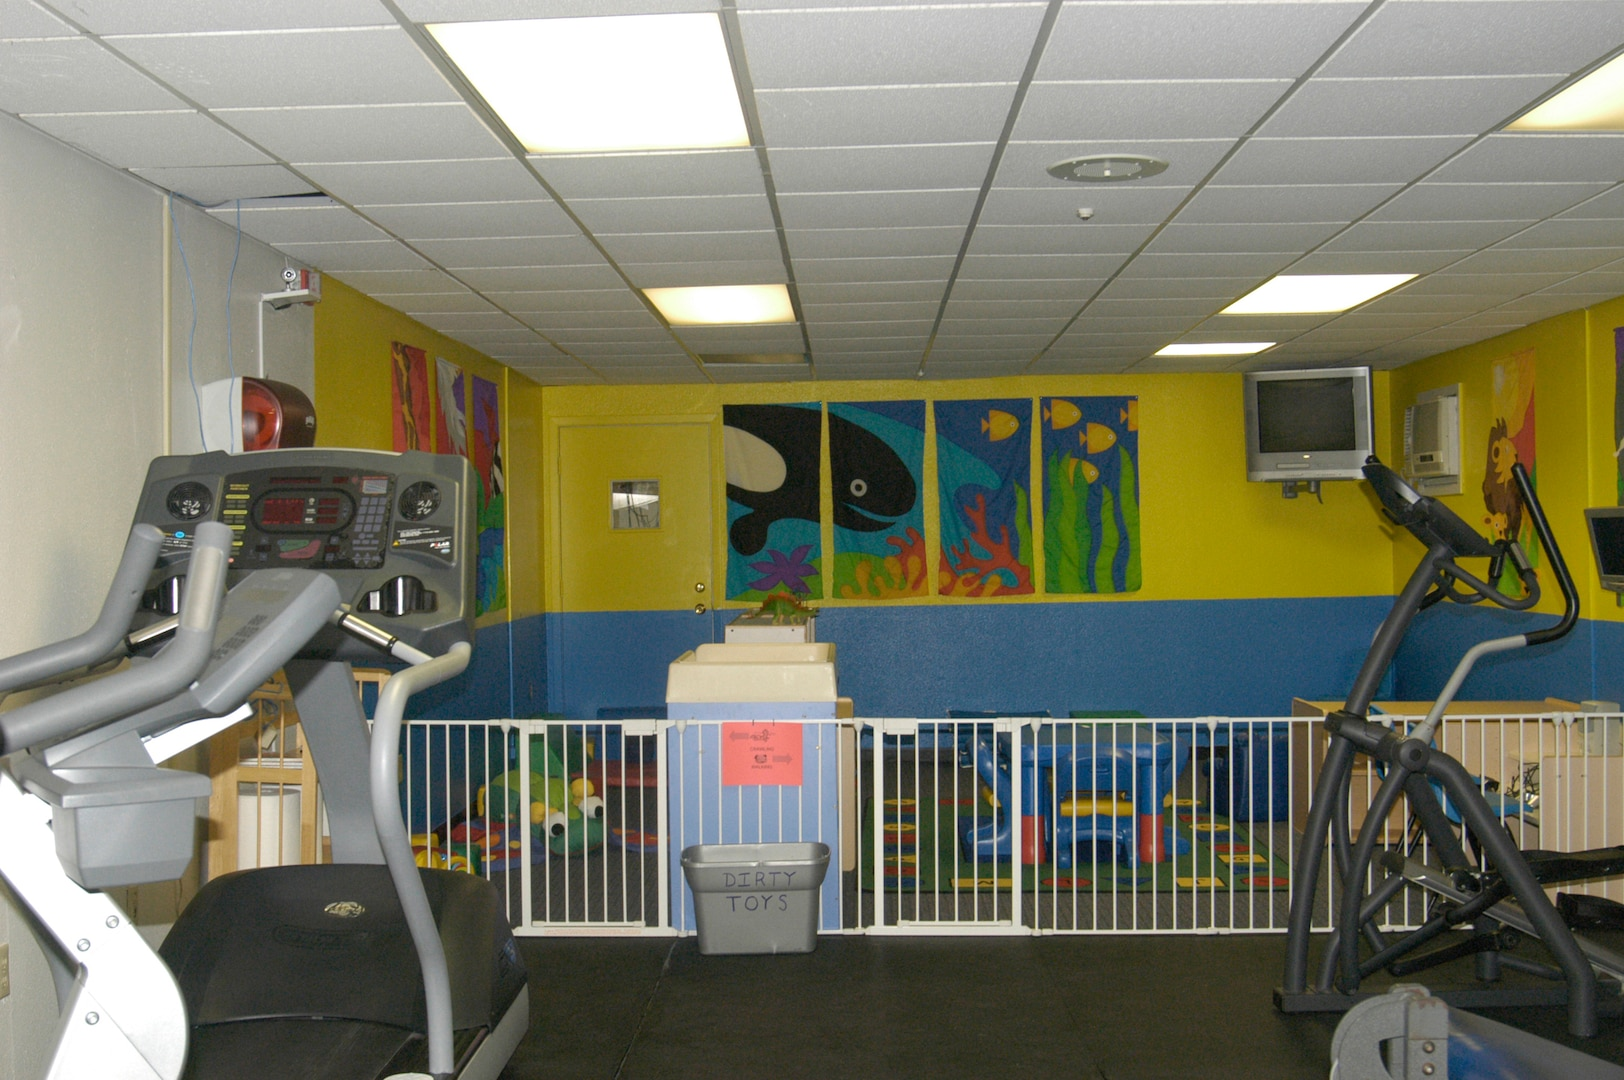 The new family fitness room at the Warhawk Fitness Center on Lackland Air Force Base, Texas, is designed to allow children to play while their parents or guardians exercise. (USAF photo by Mandi Cruz)